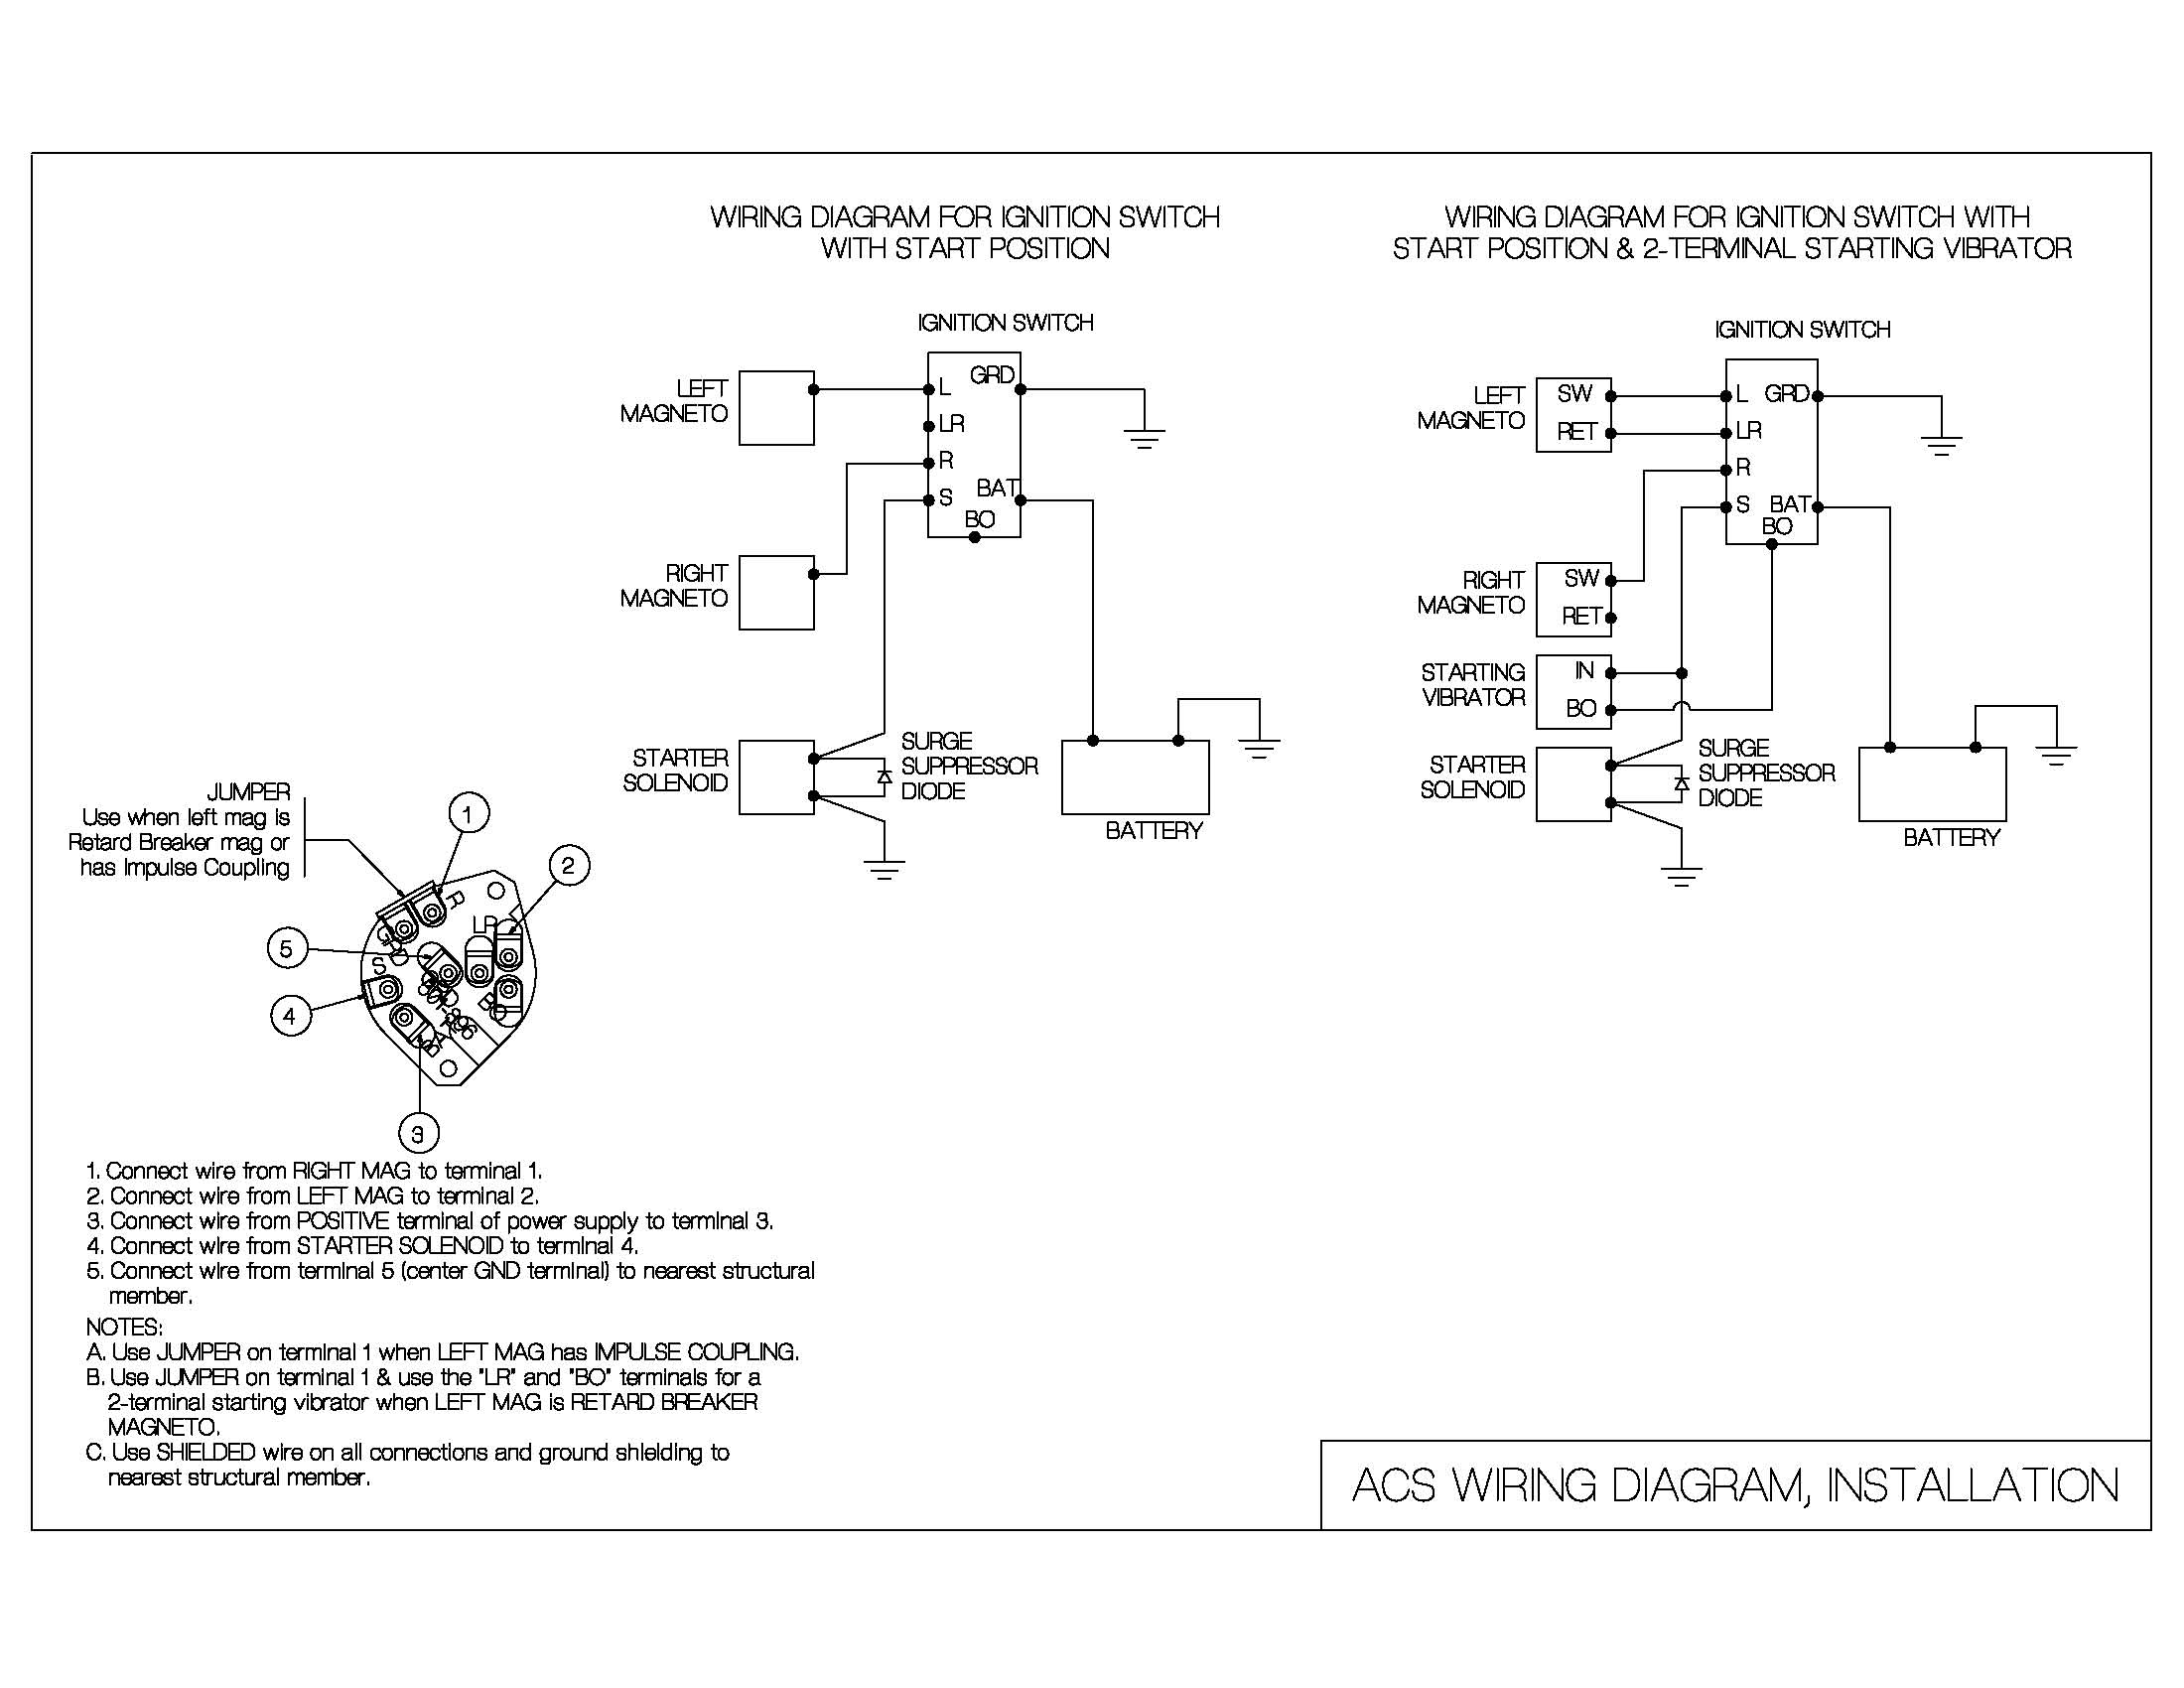 Wiring Diagram ignition switch wiring diagram acs products company ignition switch wiring diagram at eliteediting.co